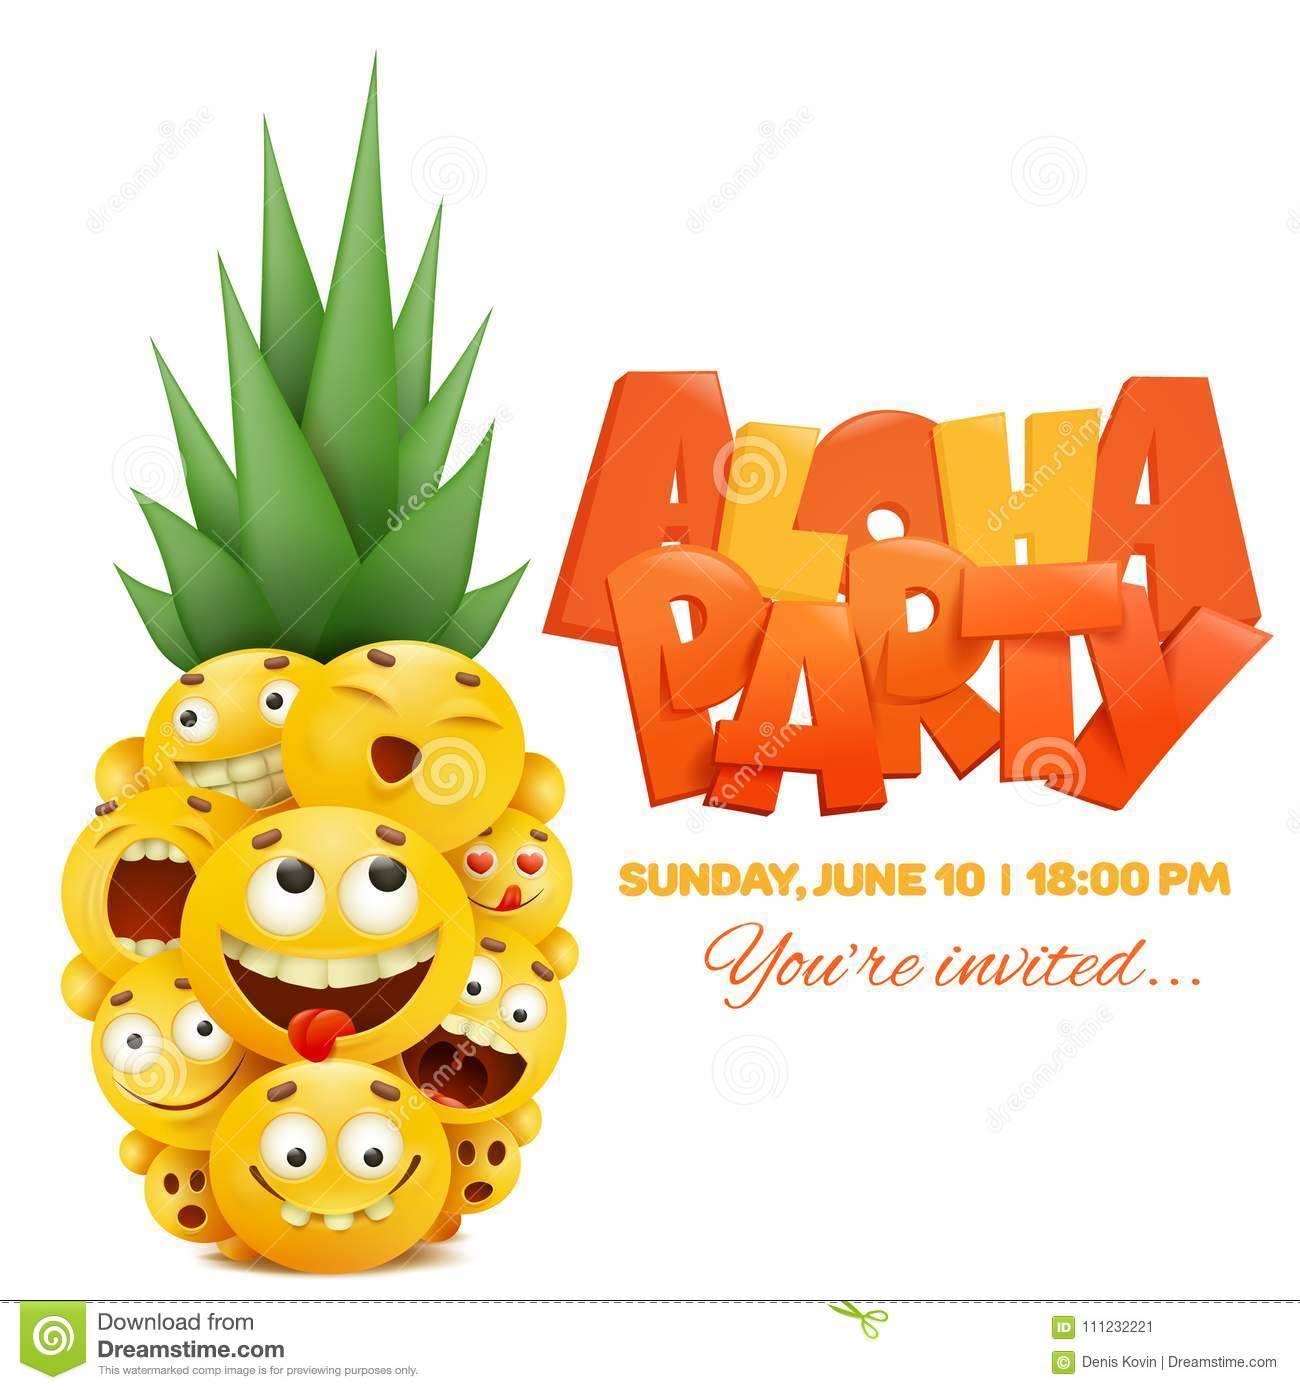 Invitation Template Card With Yellow Emoji Cartoon Smiley Faces